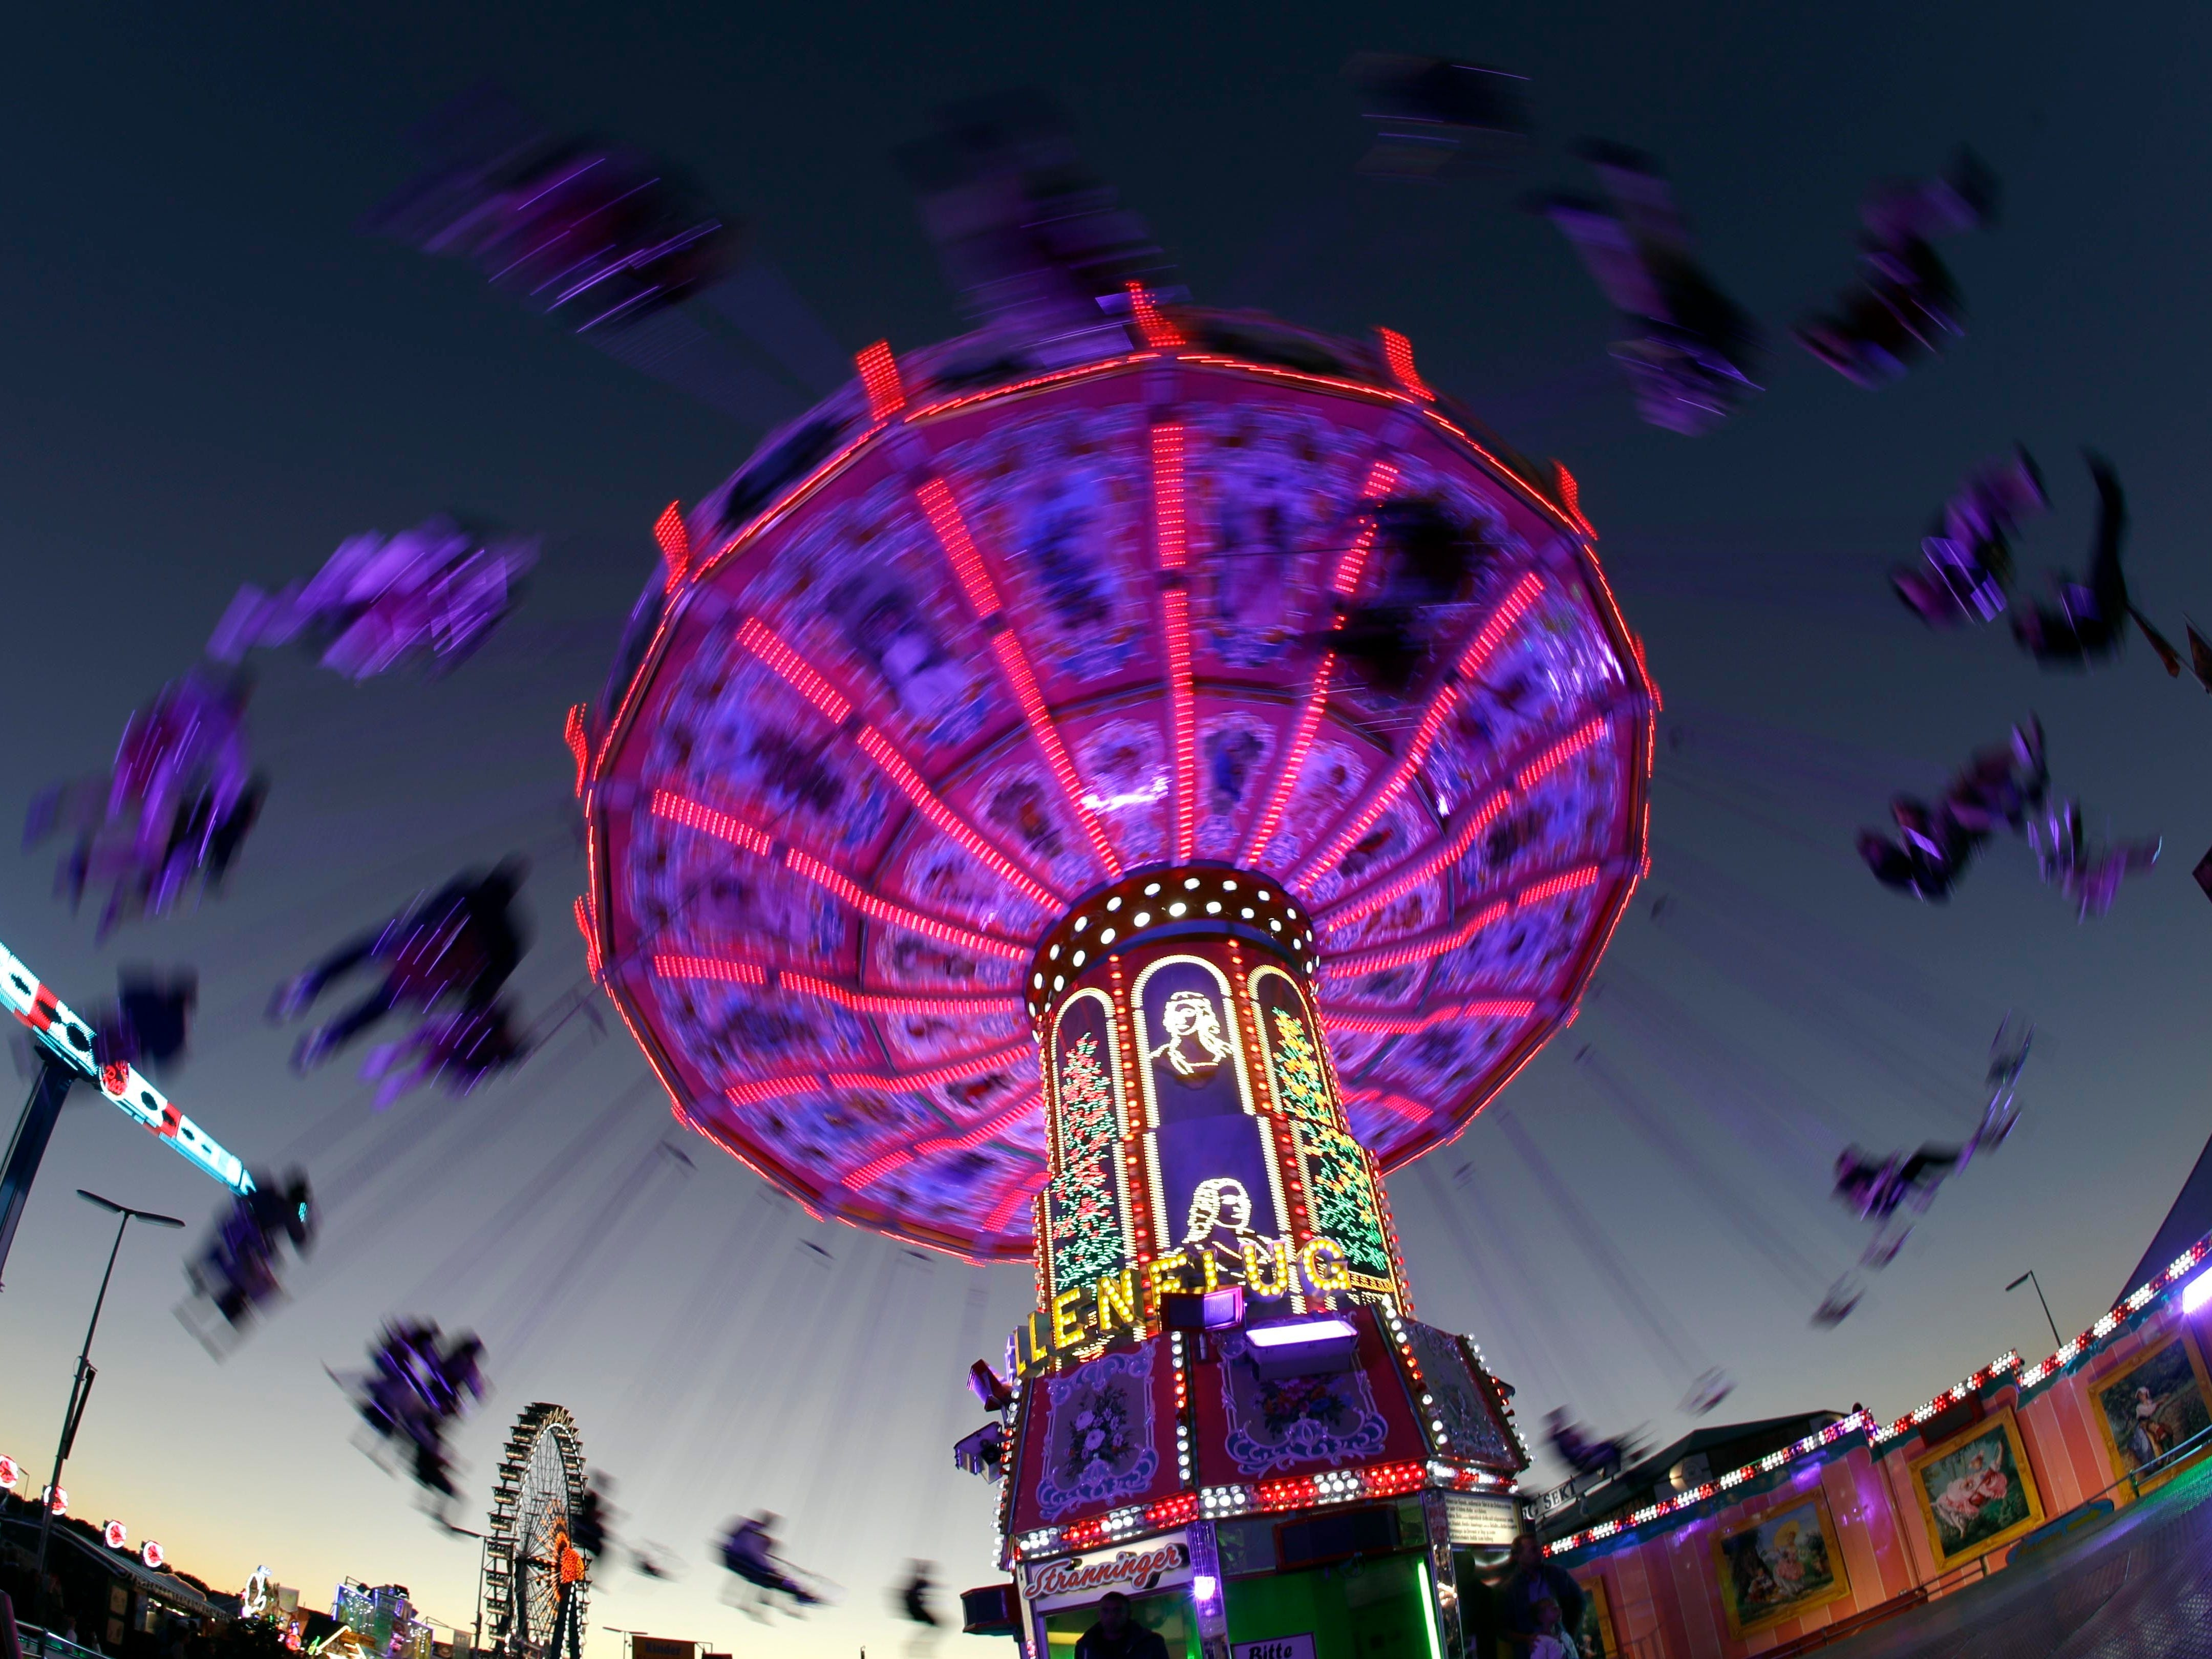 People enjoy a swing ride at the 185th Oktoberfest beer festival in Munich, Germany, Thursday, Sept. 27, 2018.